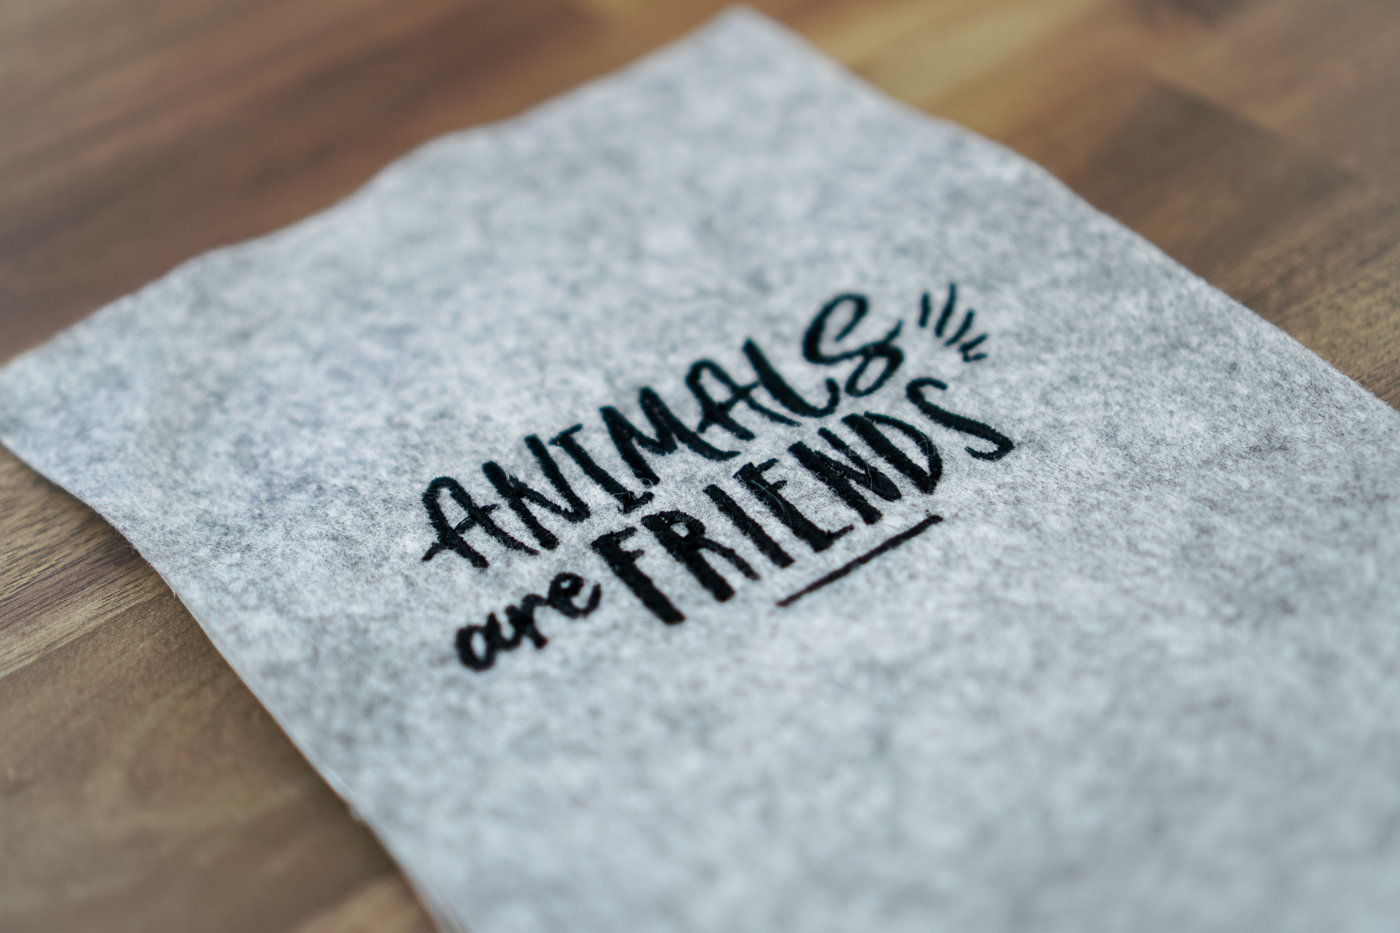 Stickdatei »Animals are Friends« für Tierfreunde stickdateien tiere 🐽 17x Stickdateien Tiere + BONUS Stickdatei GRATIS 🌟 stickdatei animals are friends 2 1400x933